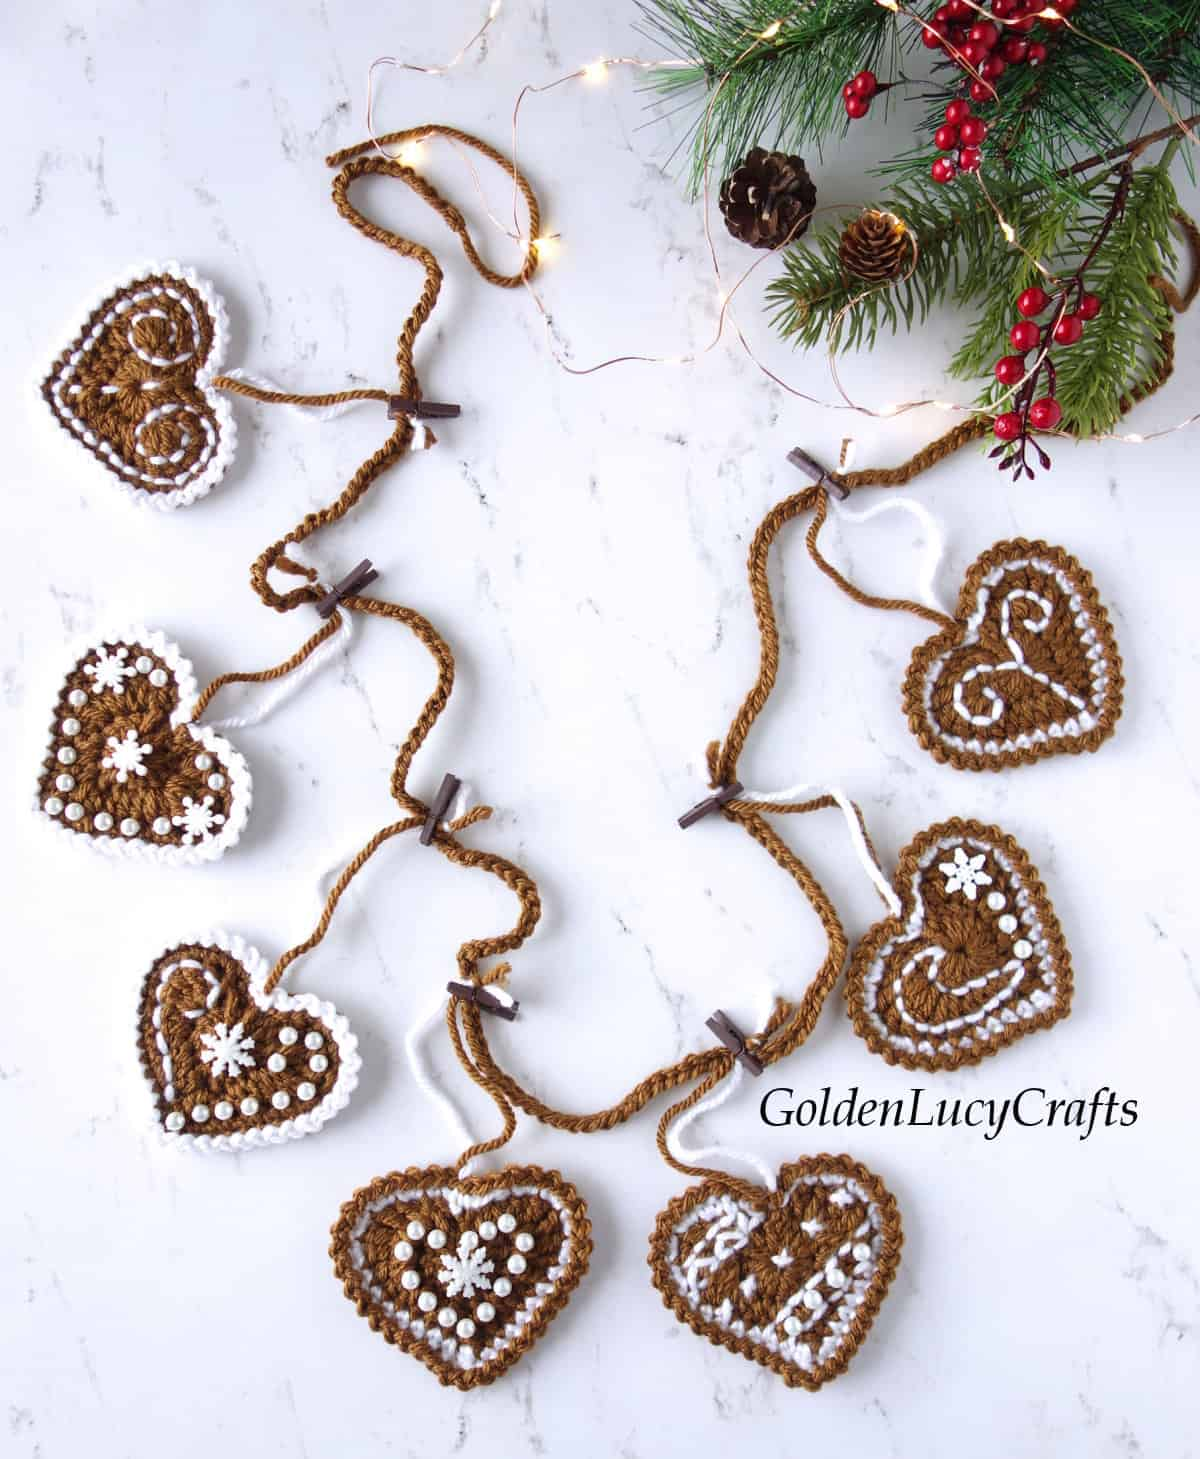 Crochet Christmas garland made from gingerbread hearts